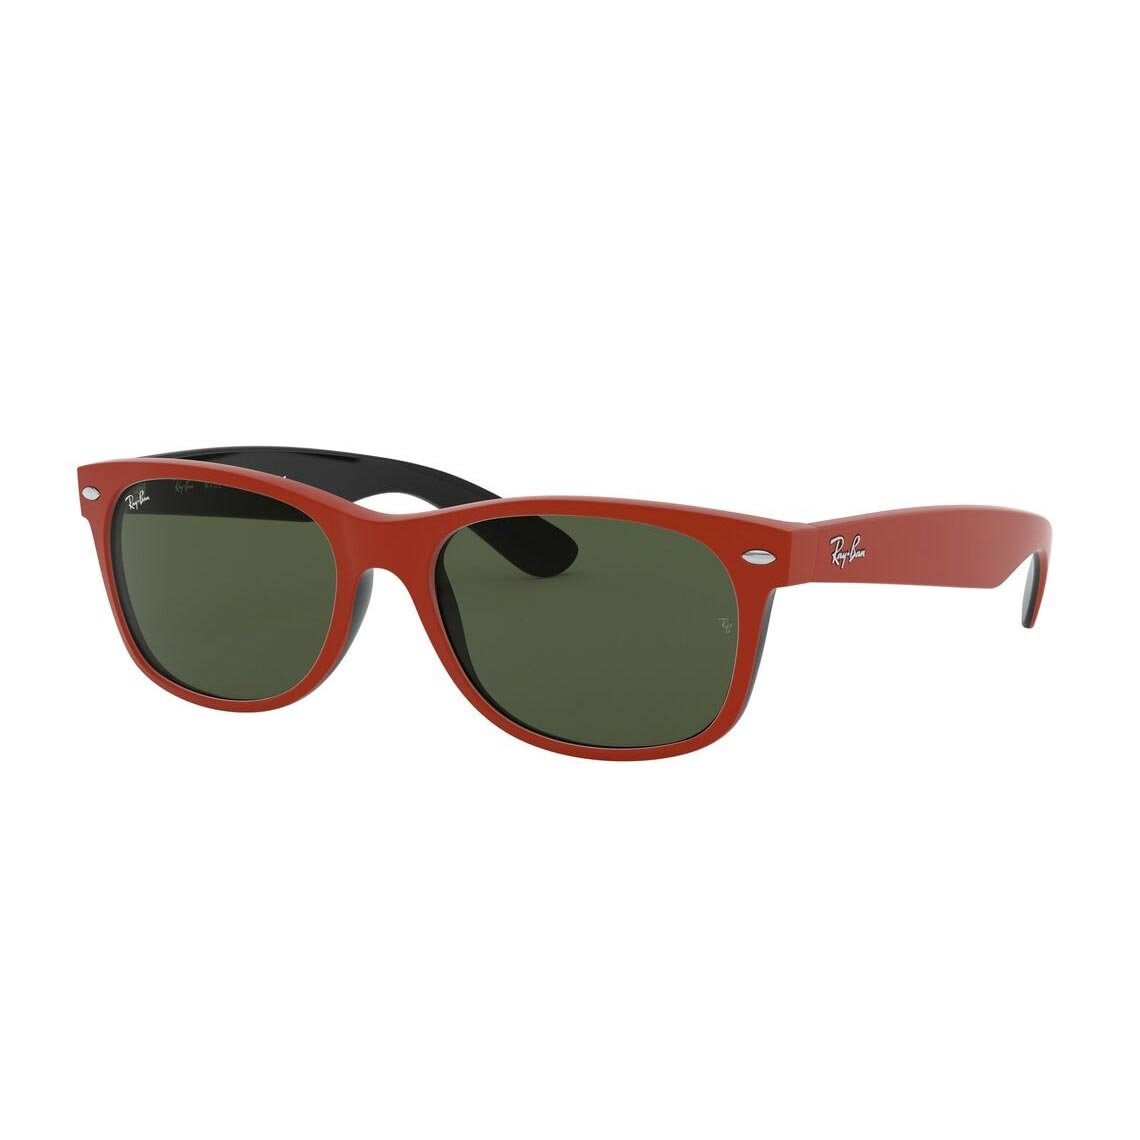 Ray-Ban New Wayfarer RB2132 646631 5218